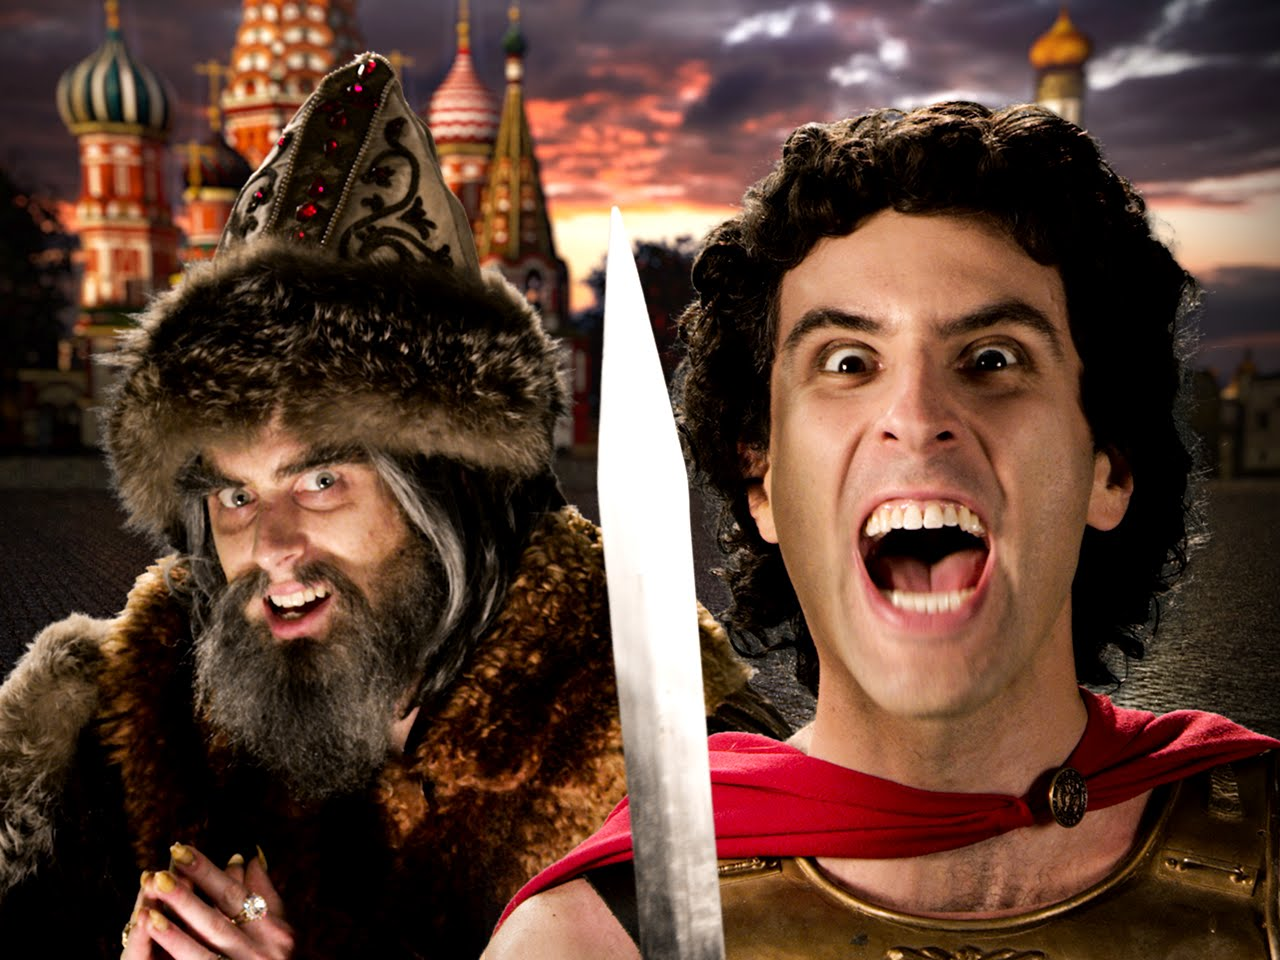 image alexander the great vs ivan the terrible thumbnail jpg